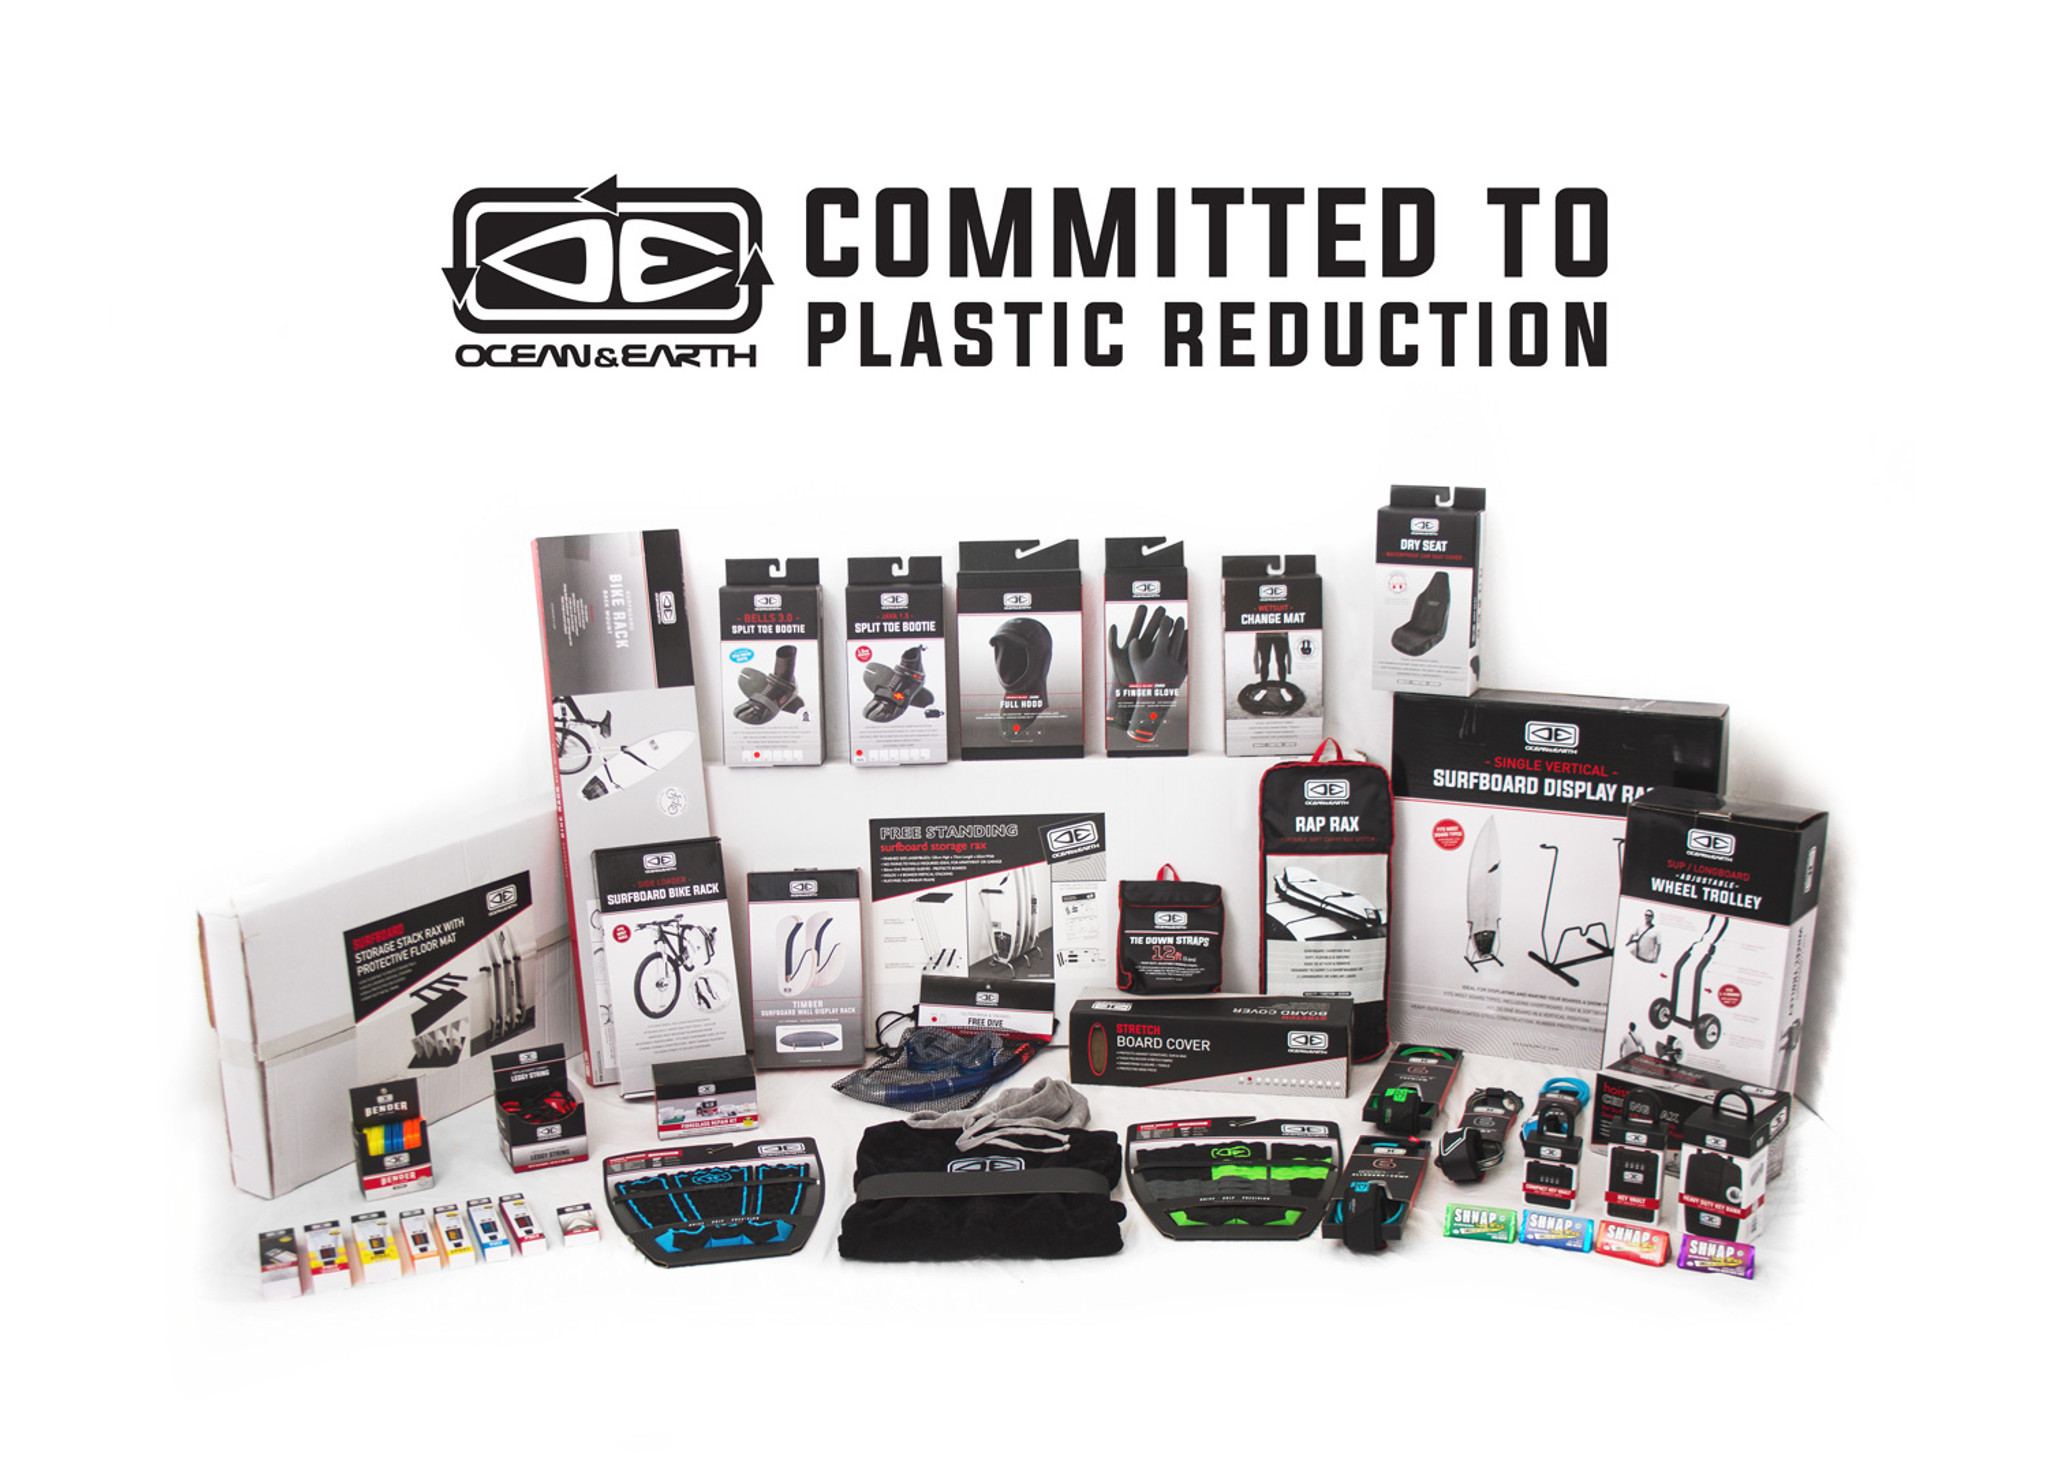 Committed to Plastic Reduction